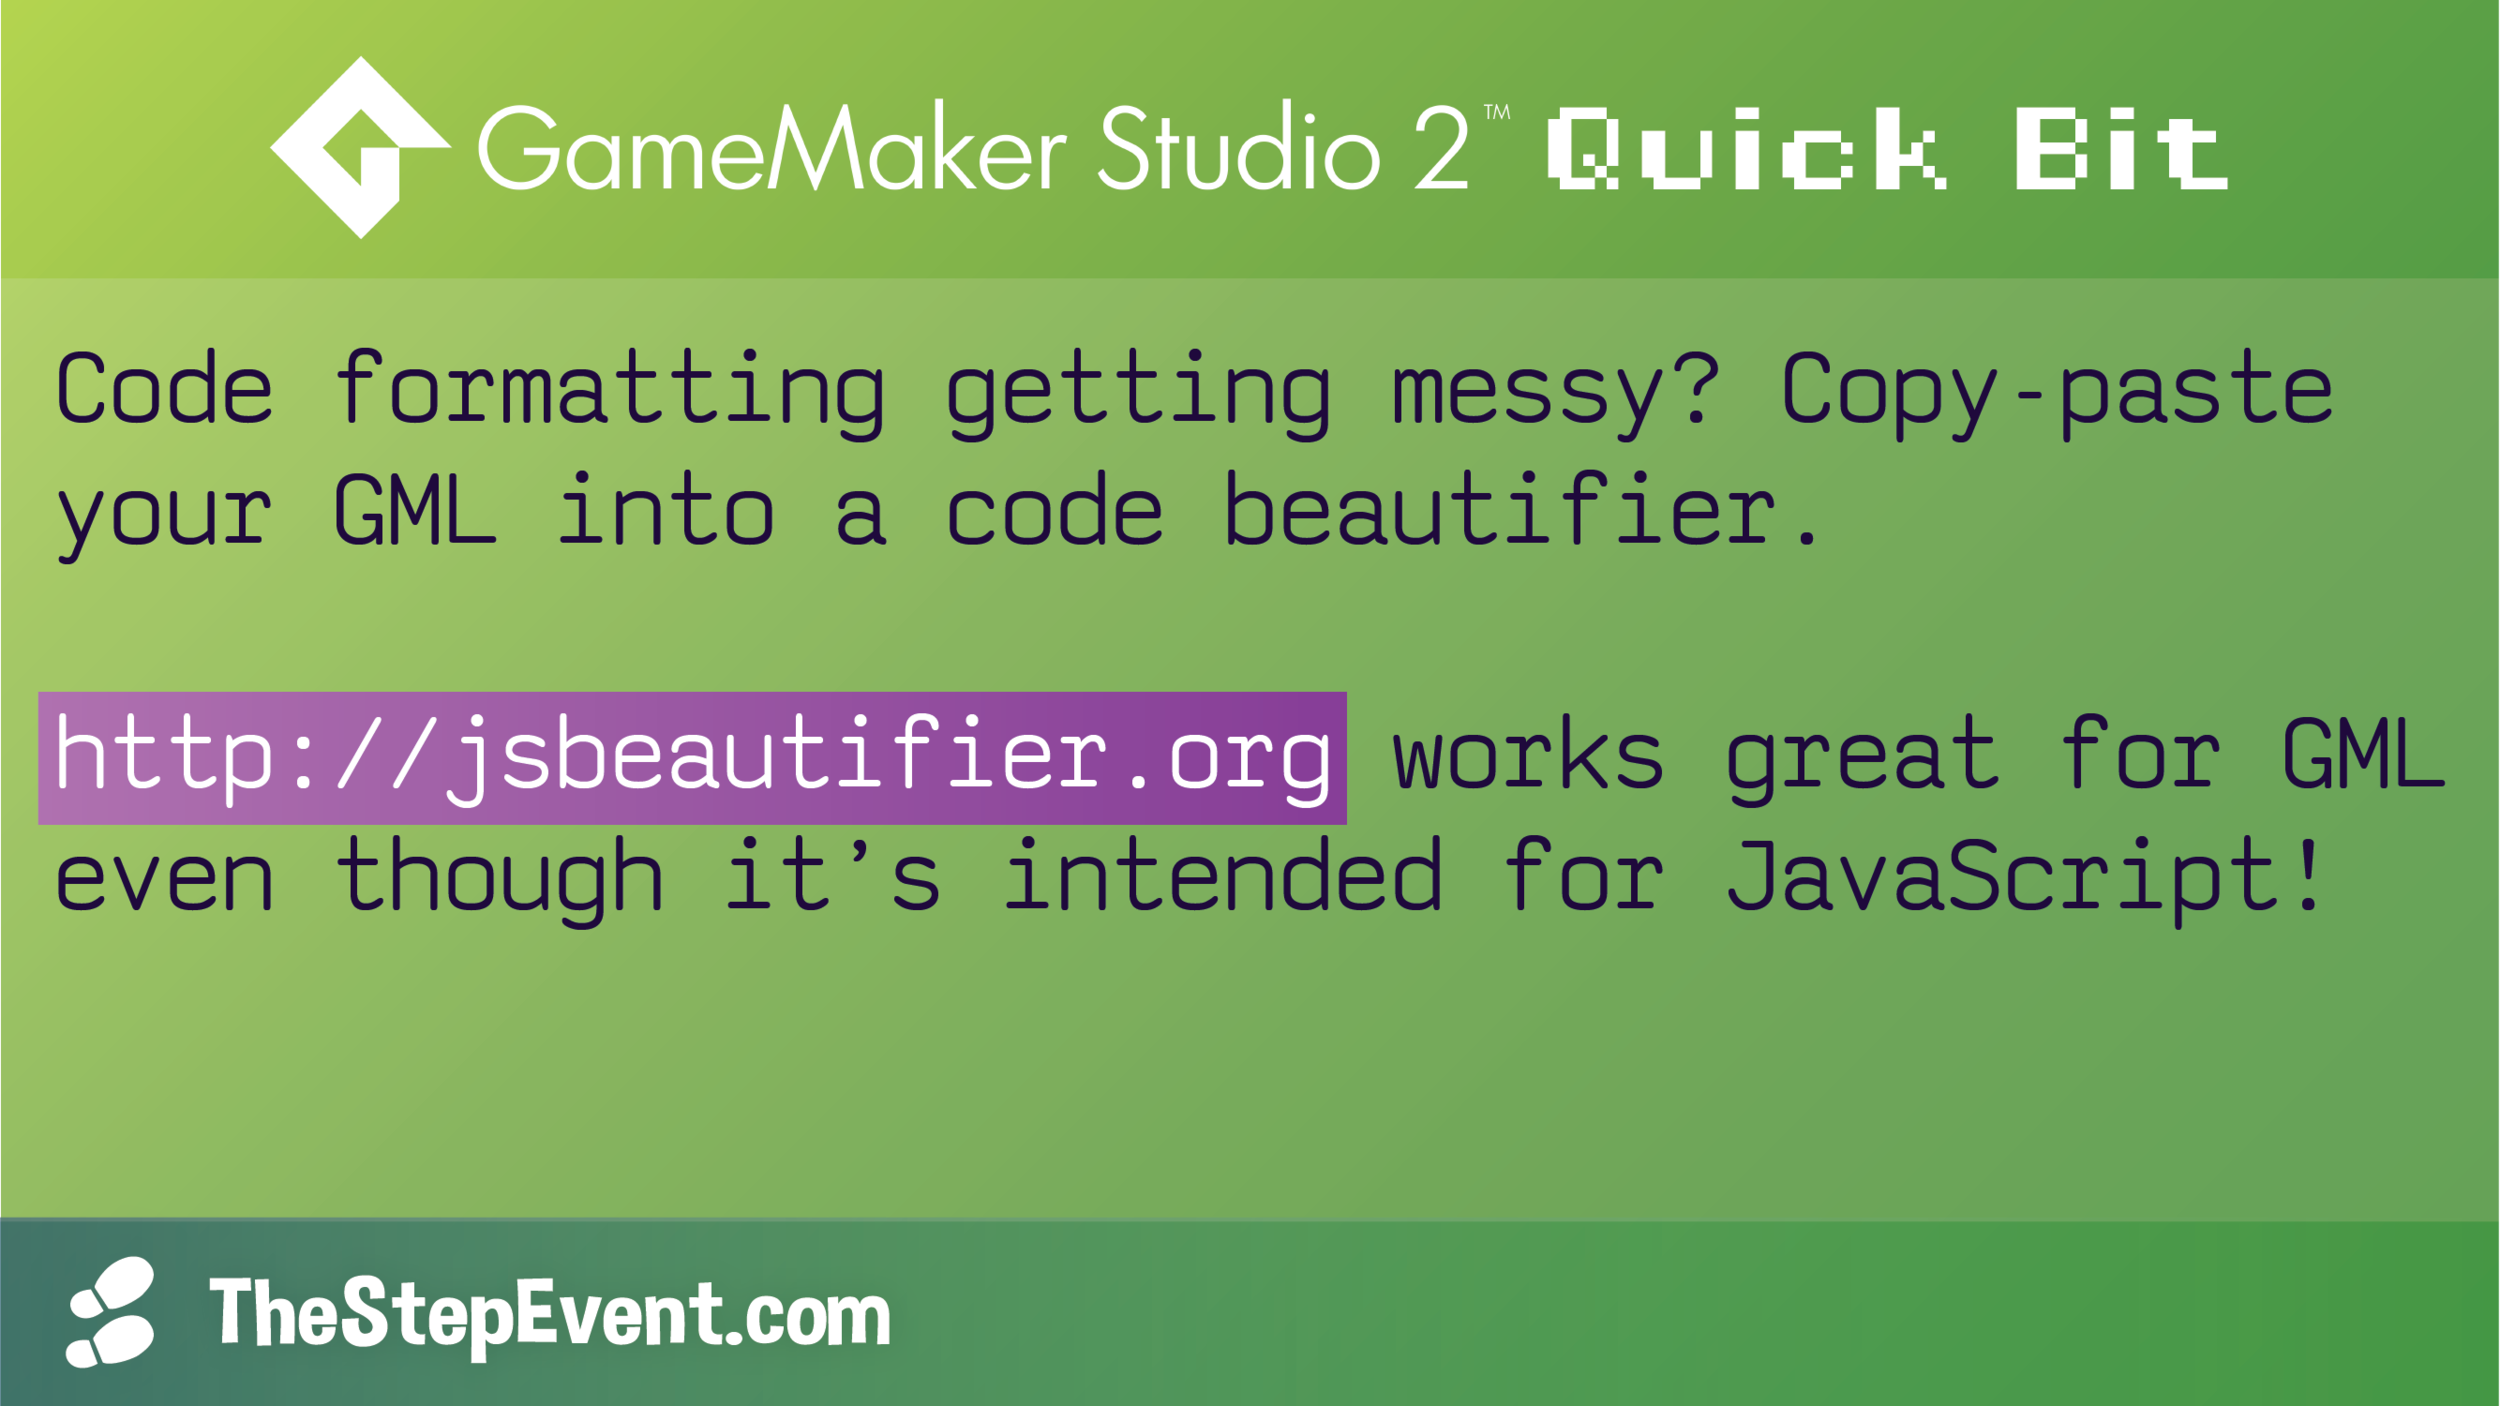 Code formatting getting messy? Copy-paste your GML into a code beautifier (linter).